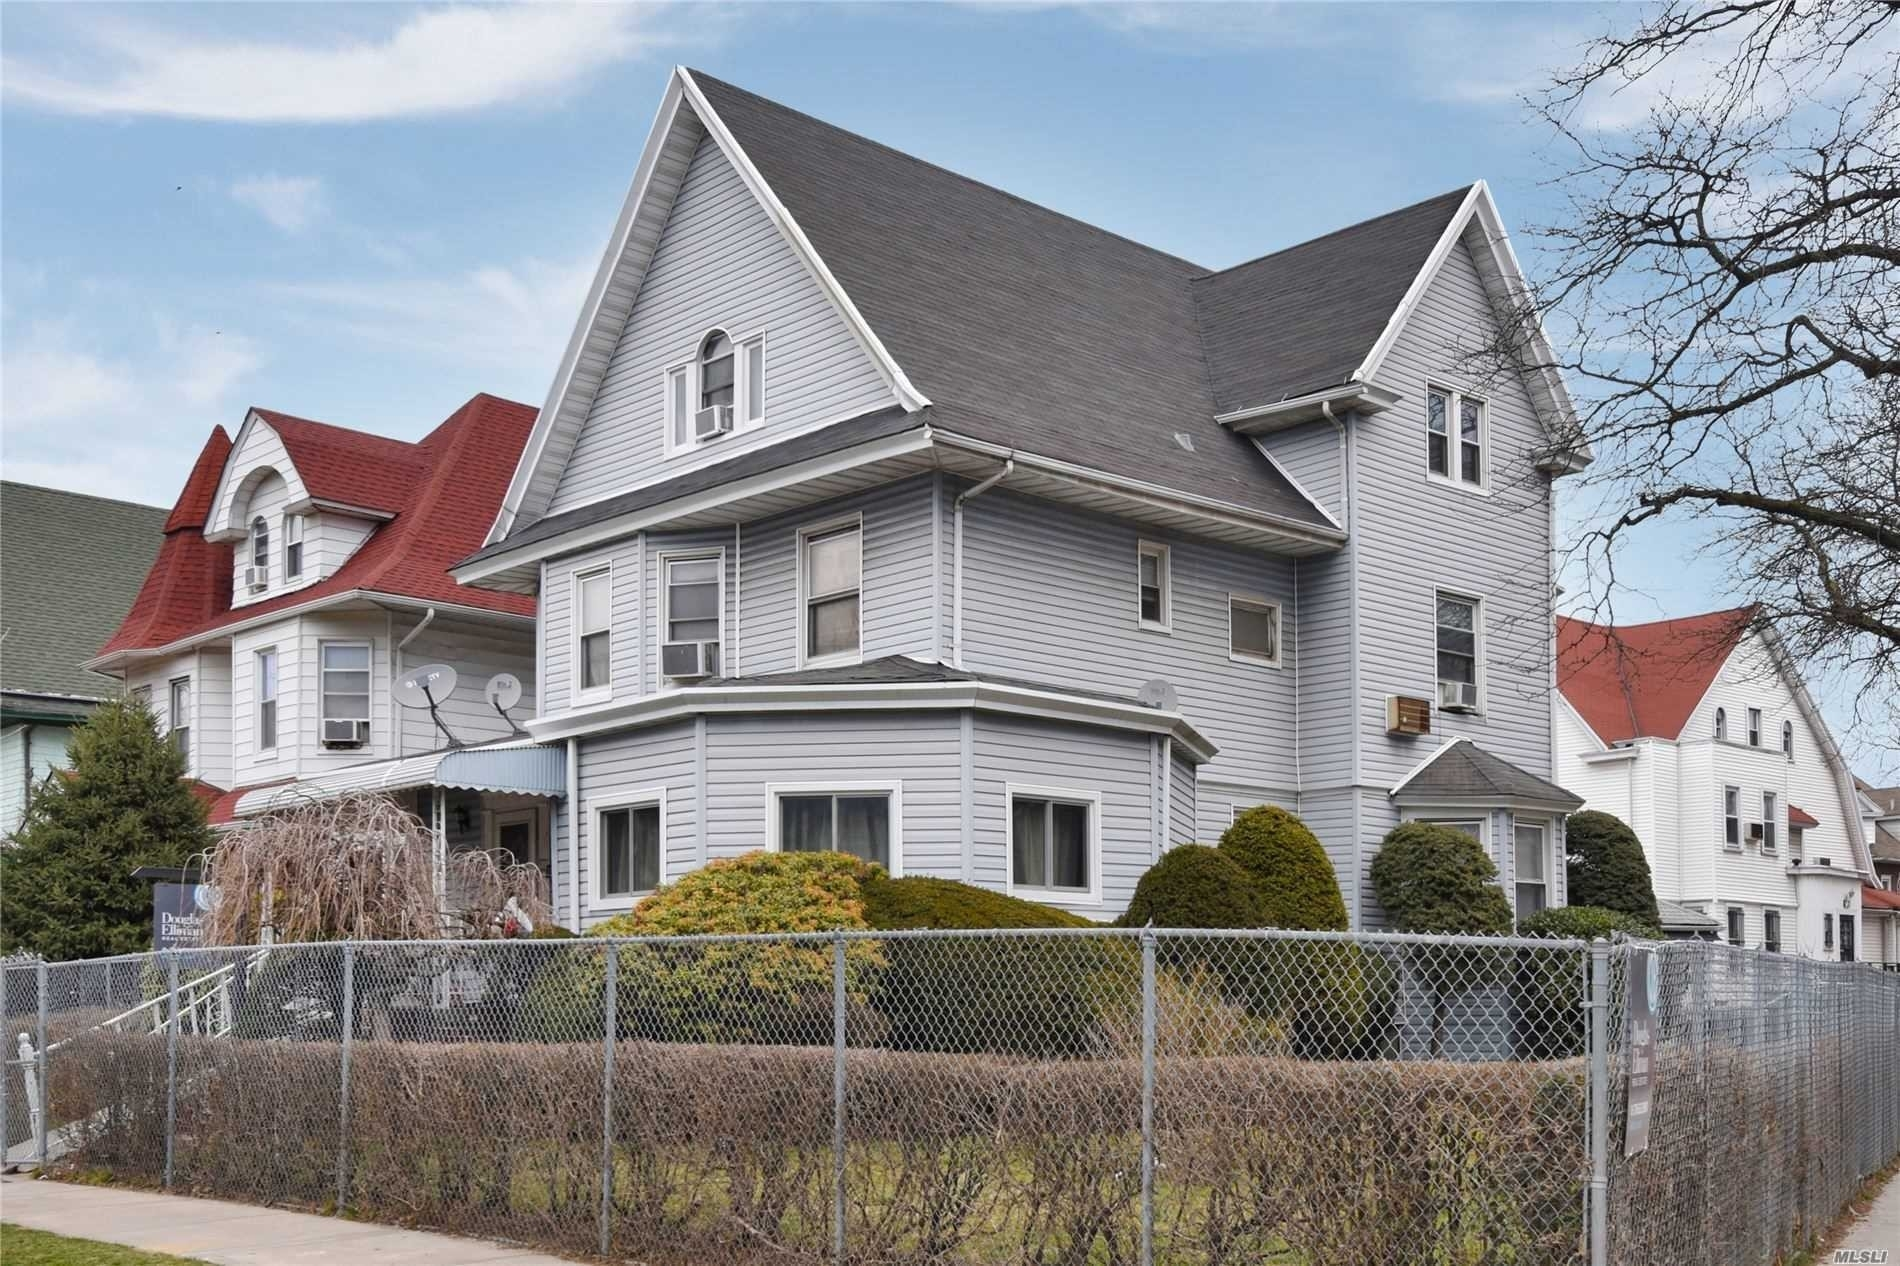 2. Single Family Homes for Sale at Prospect Park South, Brooklyn, NY 11226